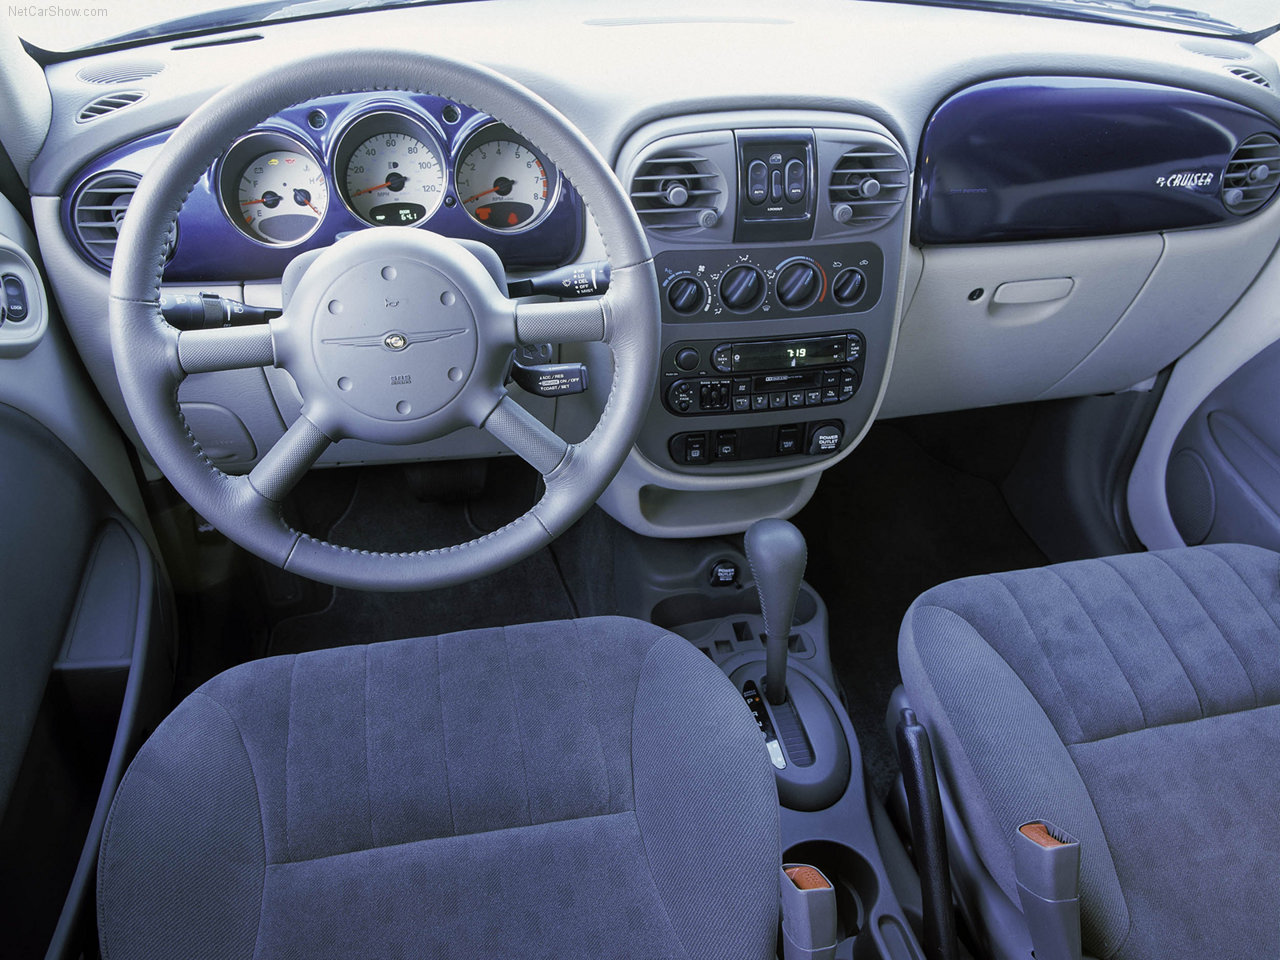 chrysler wallpapers download free 2001 chrysler pt cruiser. Cars Review. Best American Auto & Cars Review